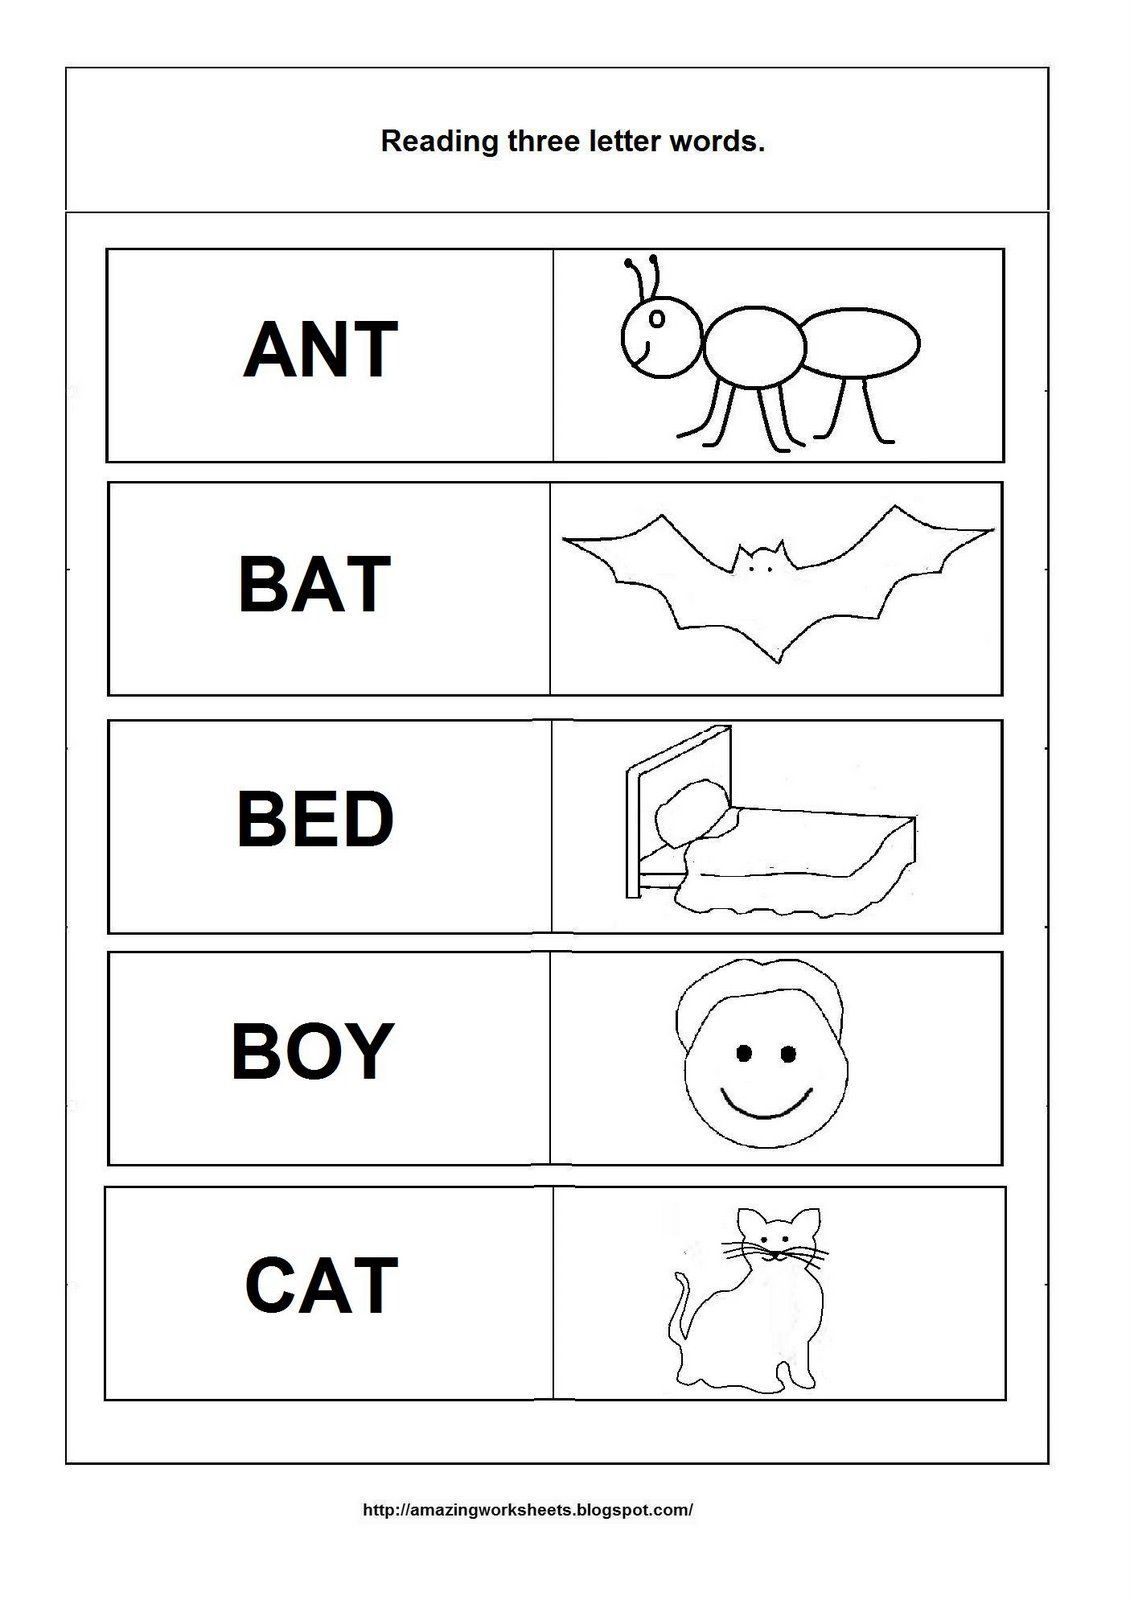 3 Letter Blends Worksheets Printable Worksheets Are A Precious Lecture Room Tool They Not Only Co In 2021 Three Letter Words Rhyming Words Worksheets Letter N Words [ 1600 x 1130 Pixel ]